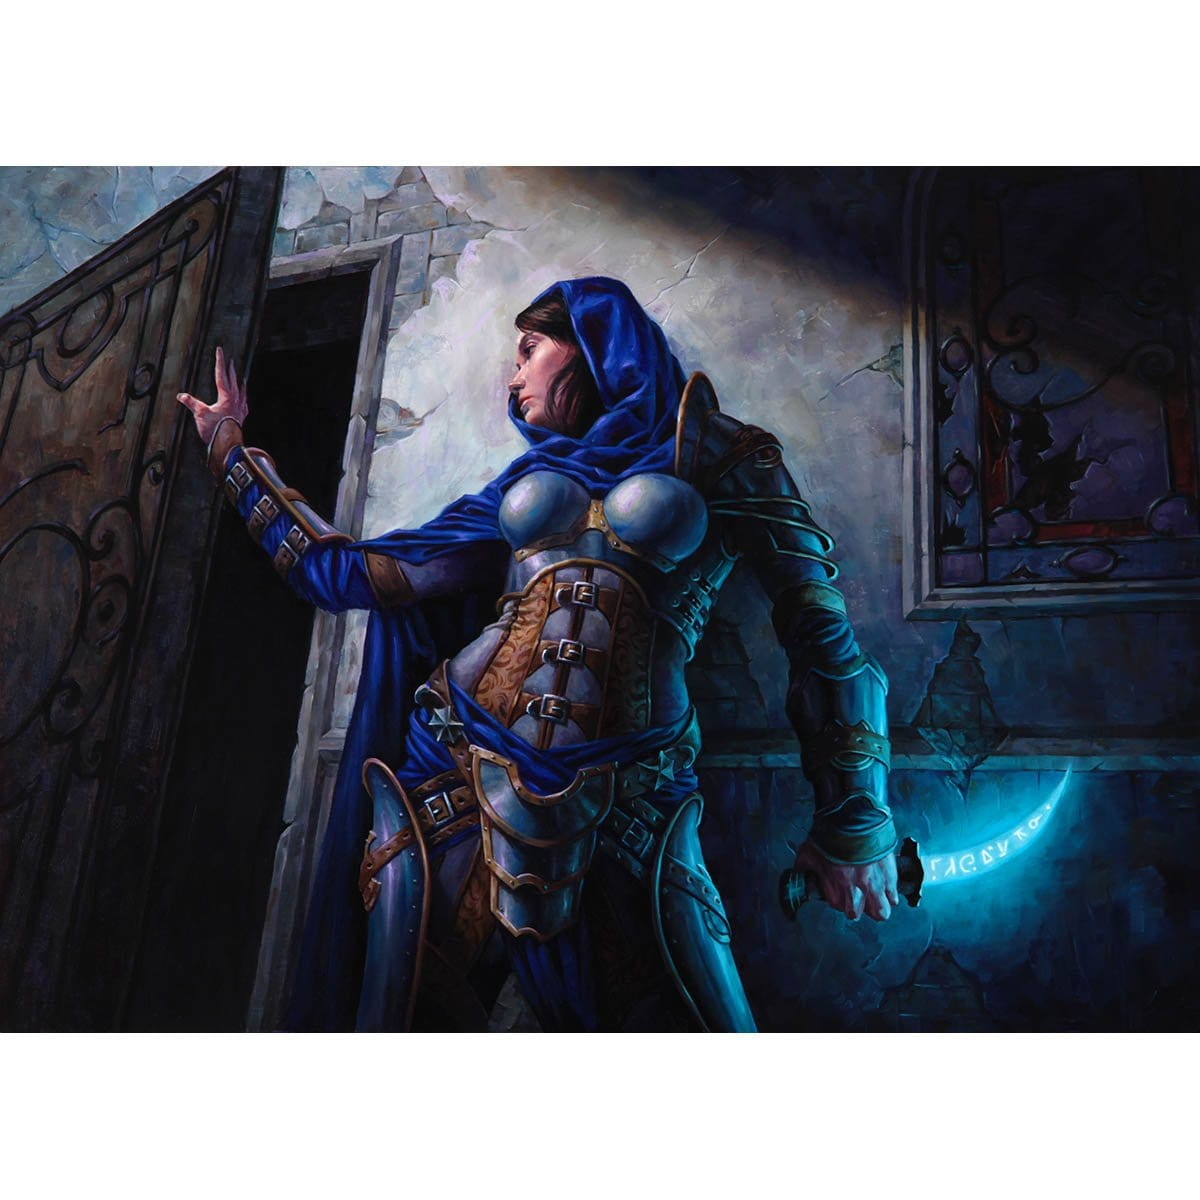 Stealer of Secrets Print - Print - Original Magic Art - Accessories for Magic the Gathering and other card games